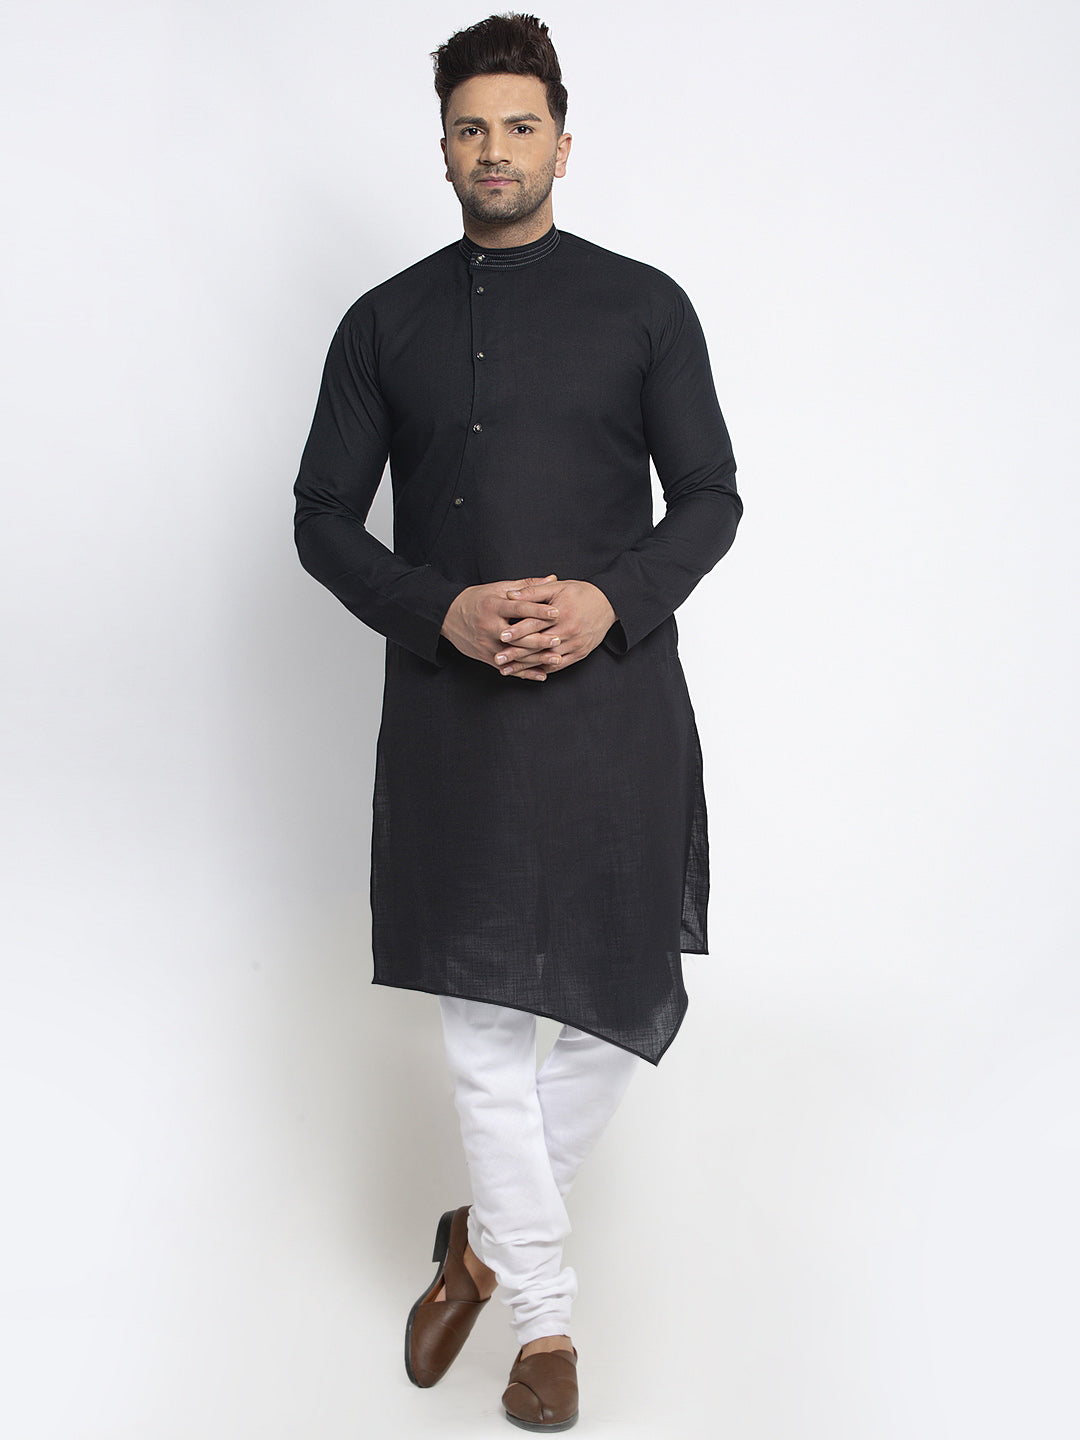 Designer Black Linen Kurta With White Churidar Pajama Set For Men By Treemoda